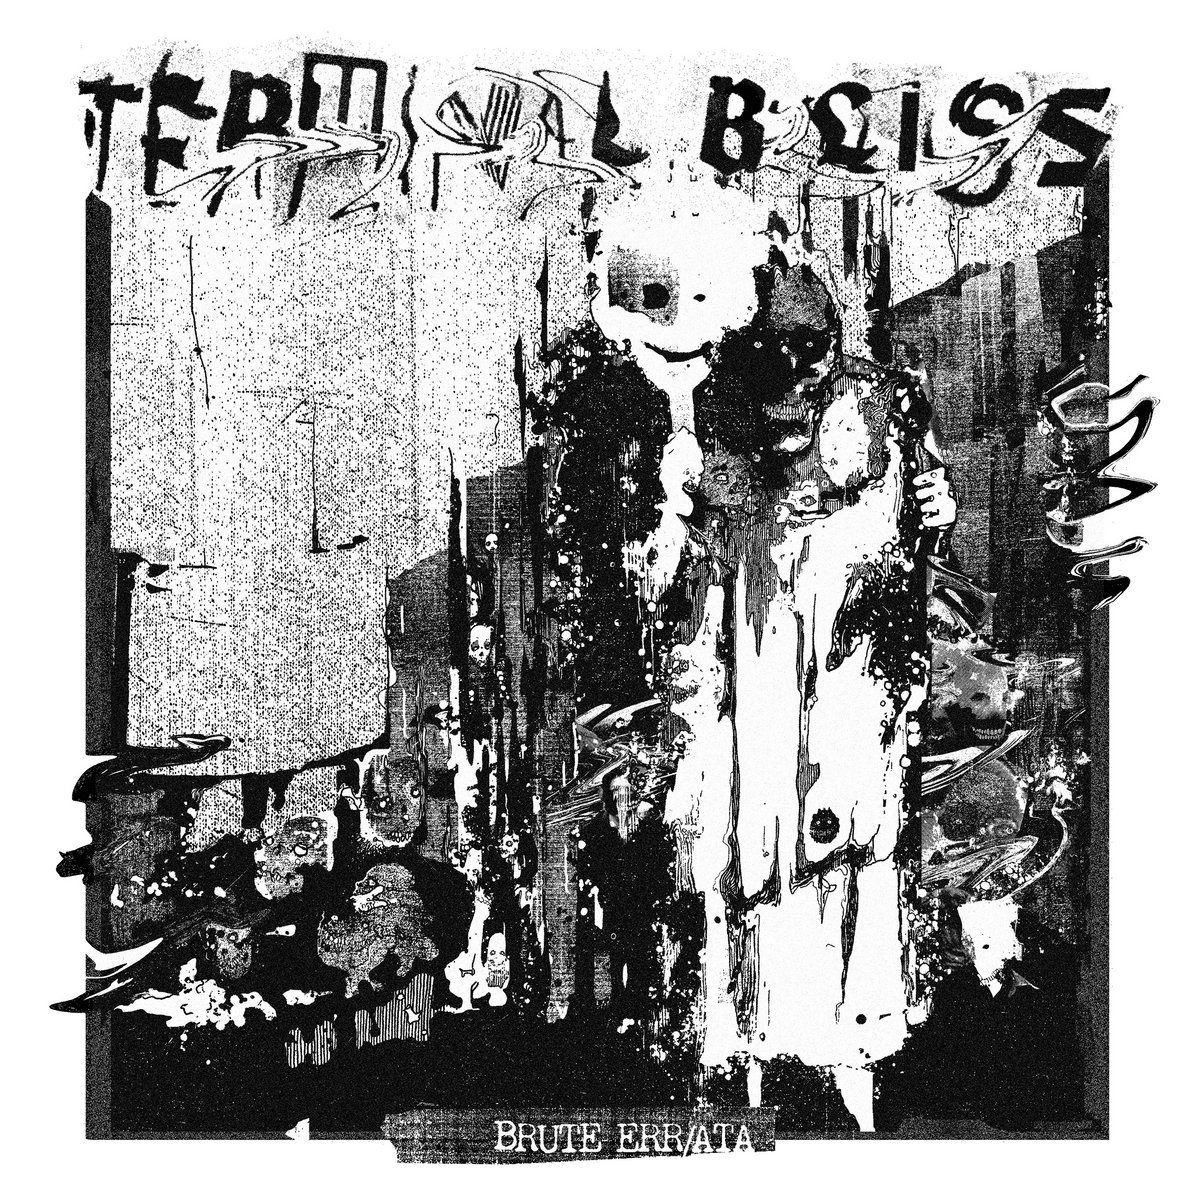 Album Review: Terminal Bliss - Brute Err/ata